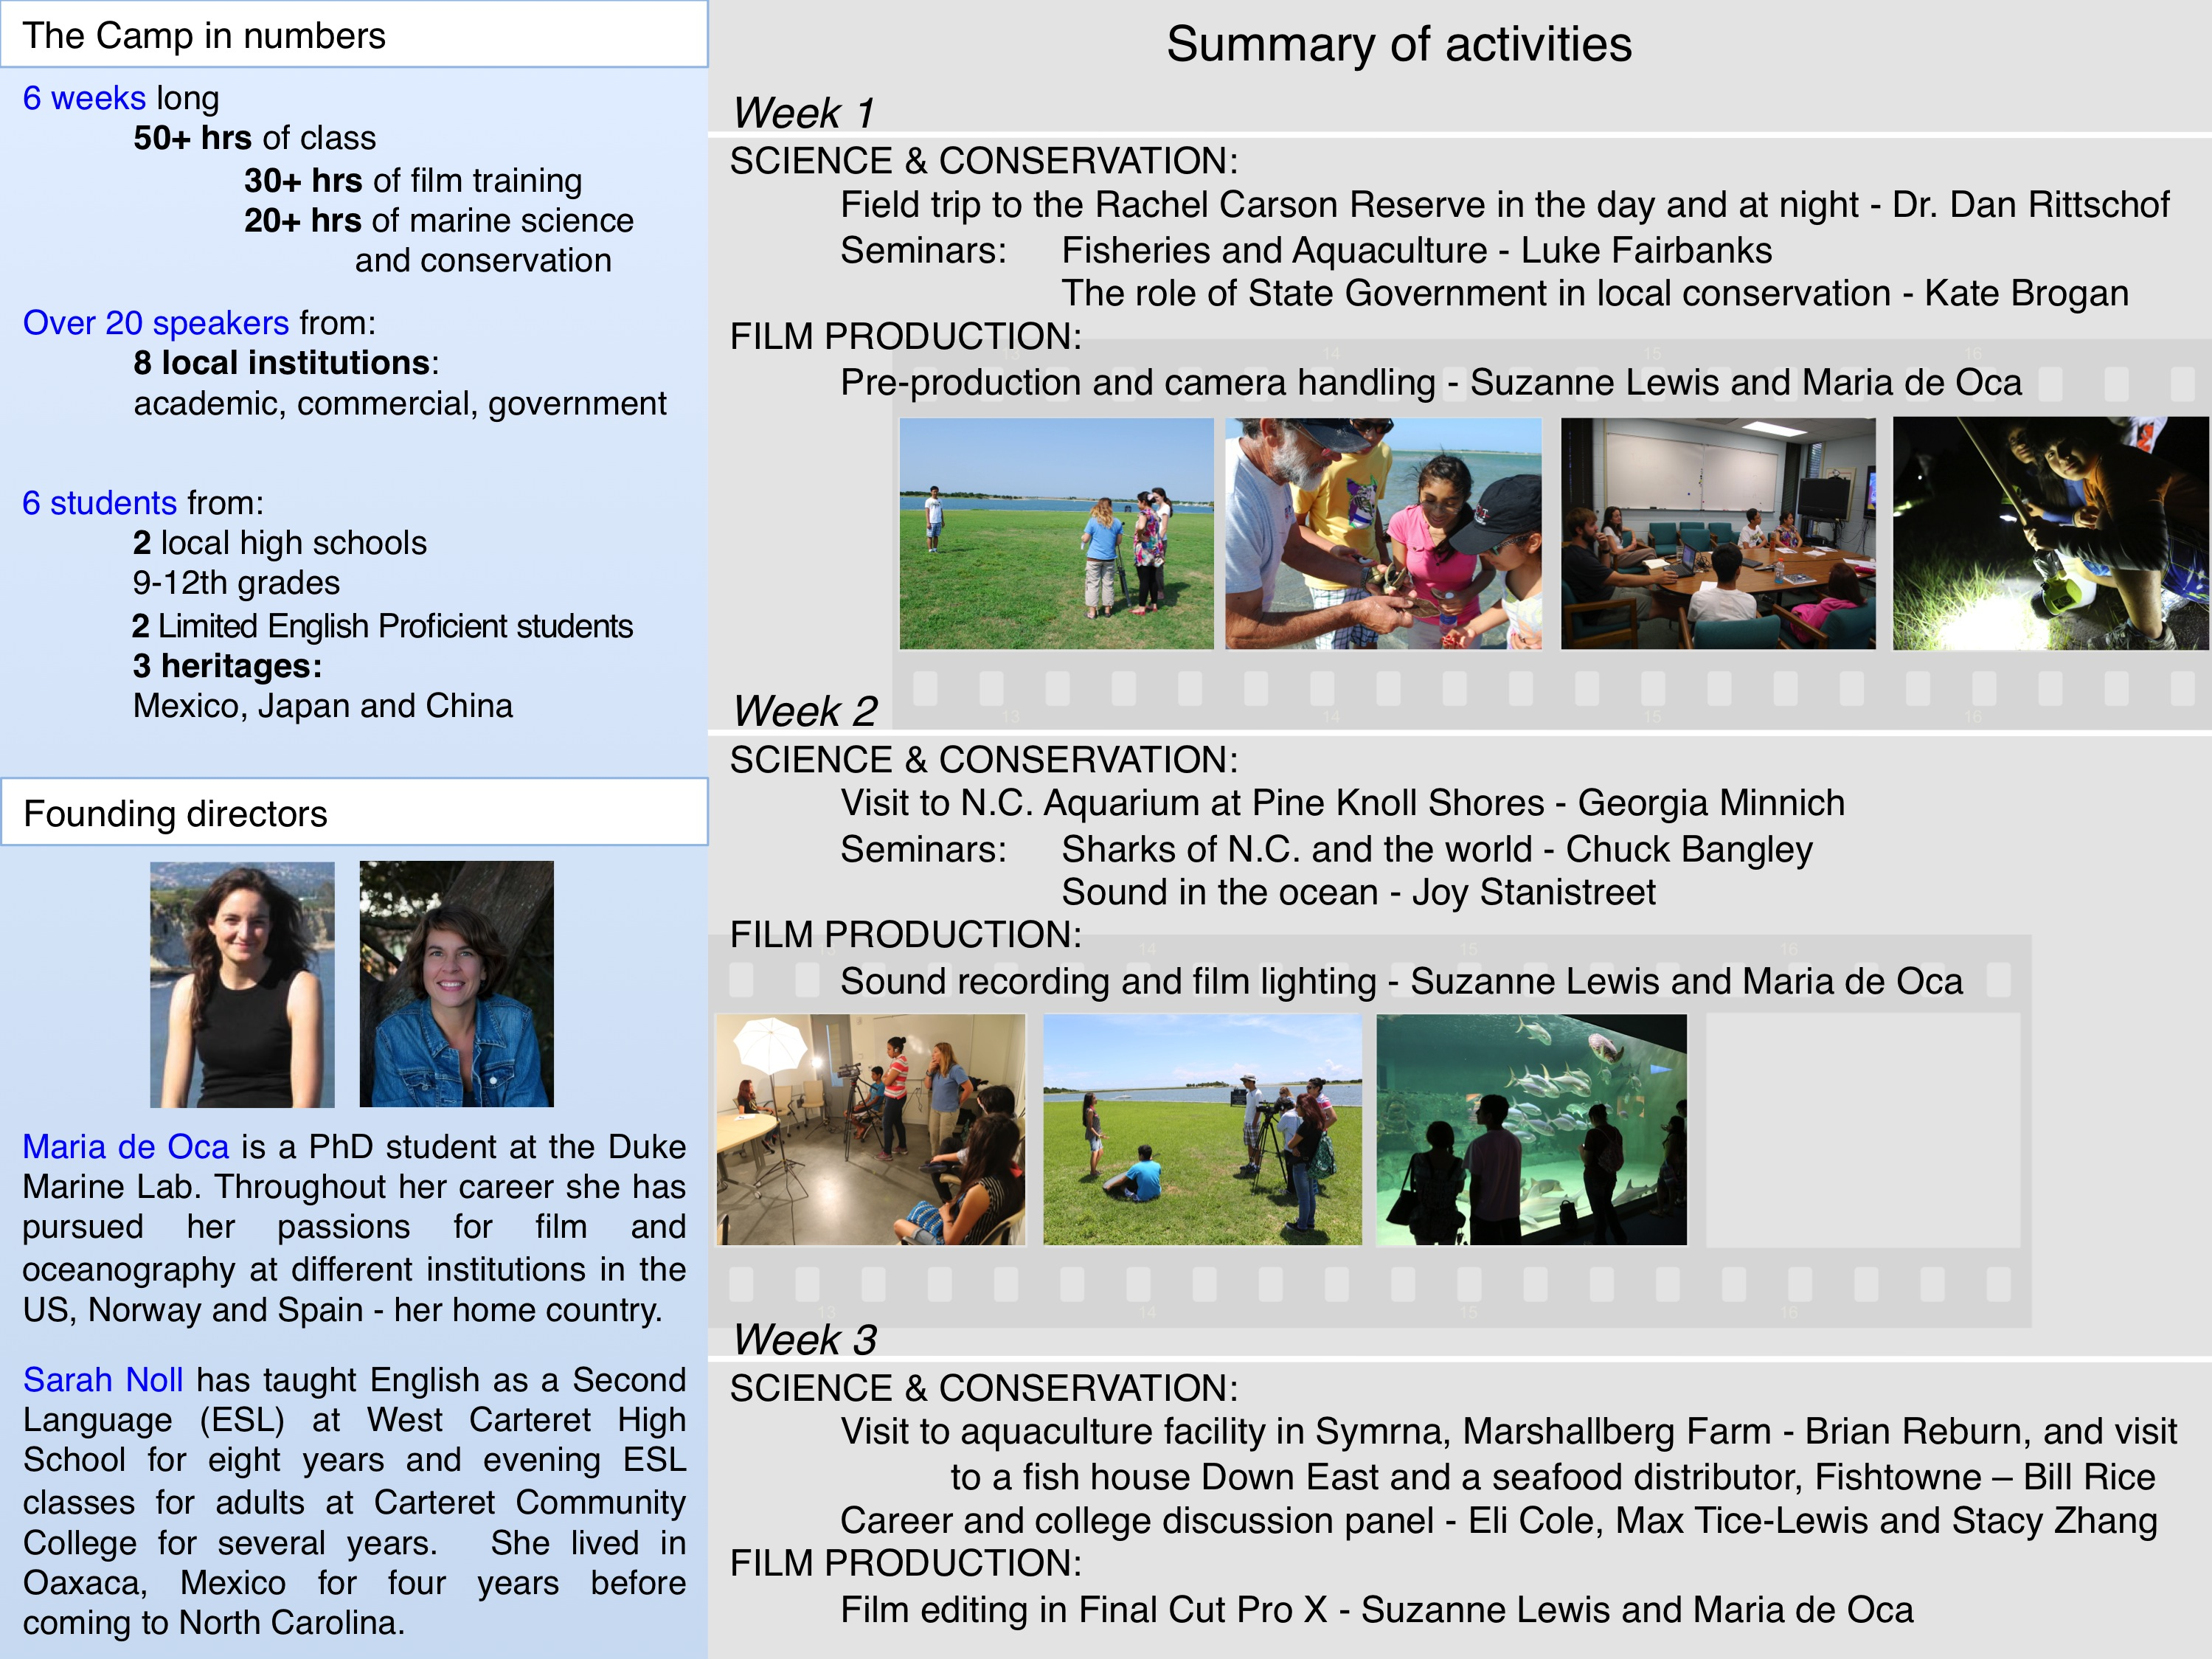 cd34341fe2345 Final Report – Ocean Filmmaking Camp   Duke University Marine Lab